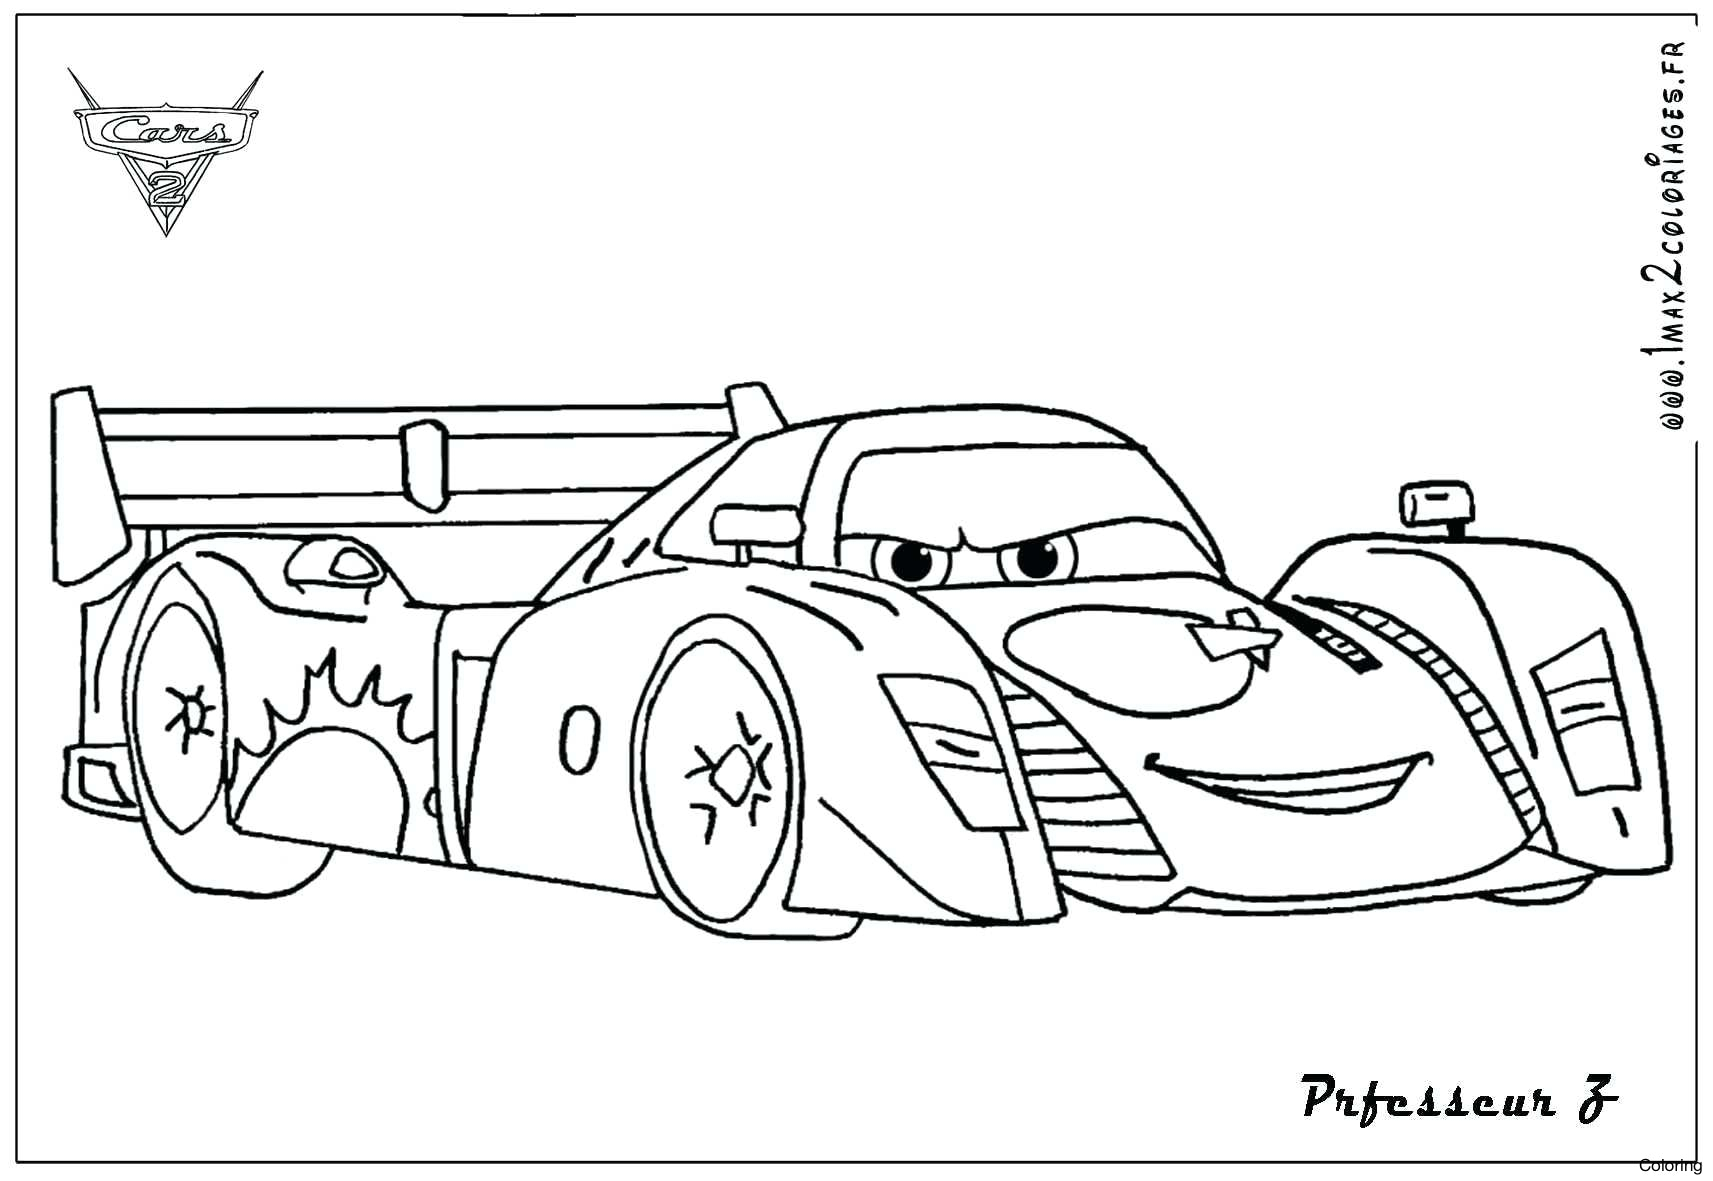 Full Size Car Coloring Pages Race 112 Outstanding Disney Cars 2 Gallery Of Disney Car Coloring Pages Cars Free Download